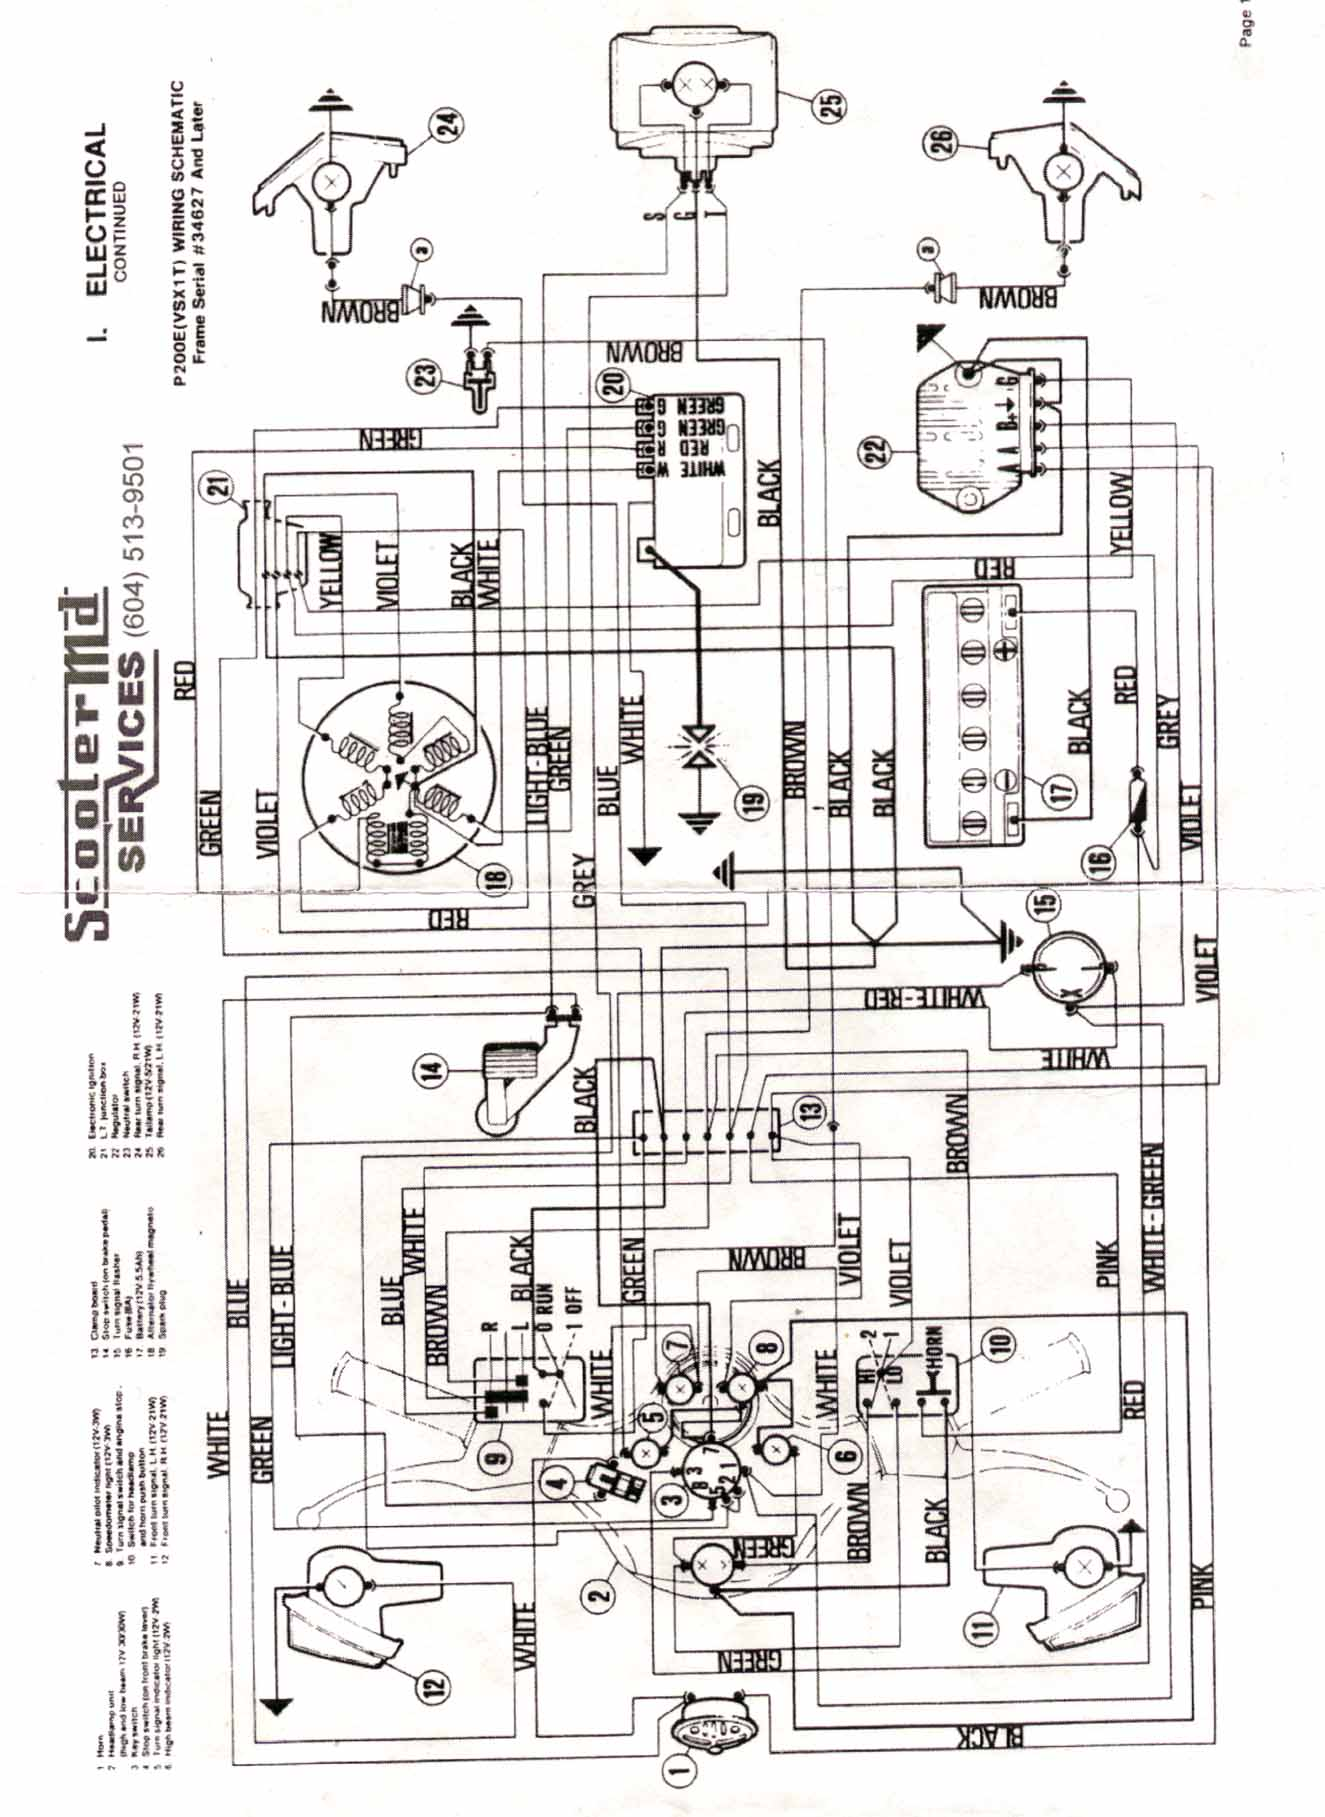 hight resolution of auto elec wiring diagrams wiring diagram data intermediate light switch wiring gaff help diynotcom diy